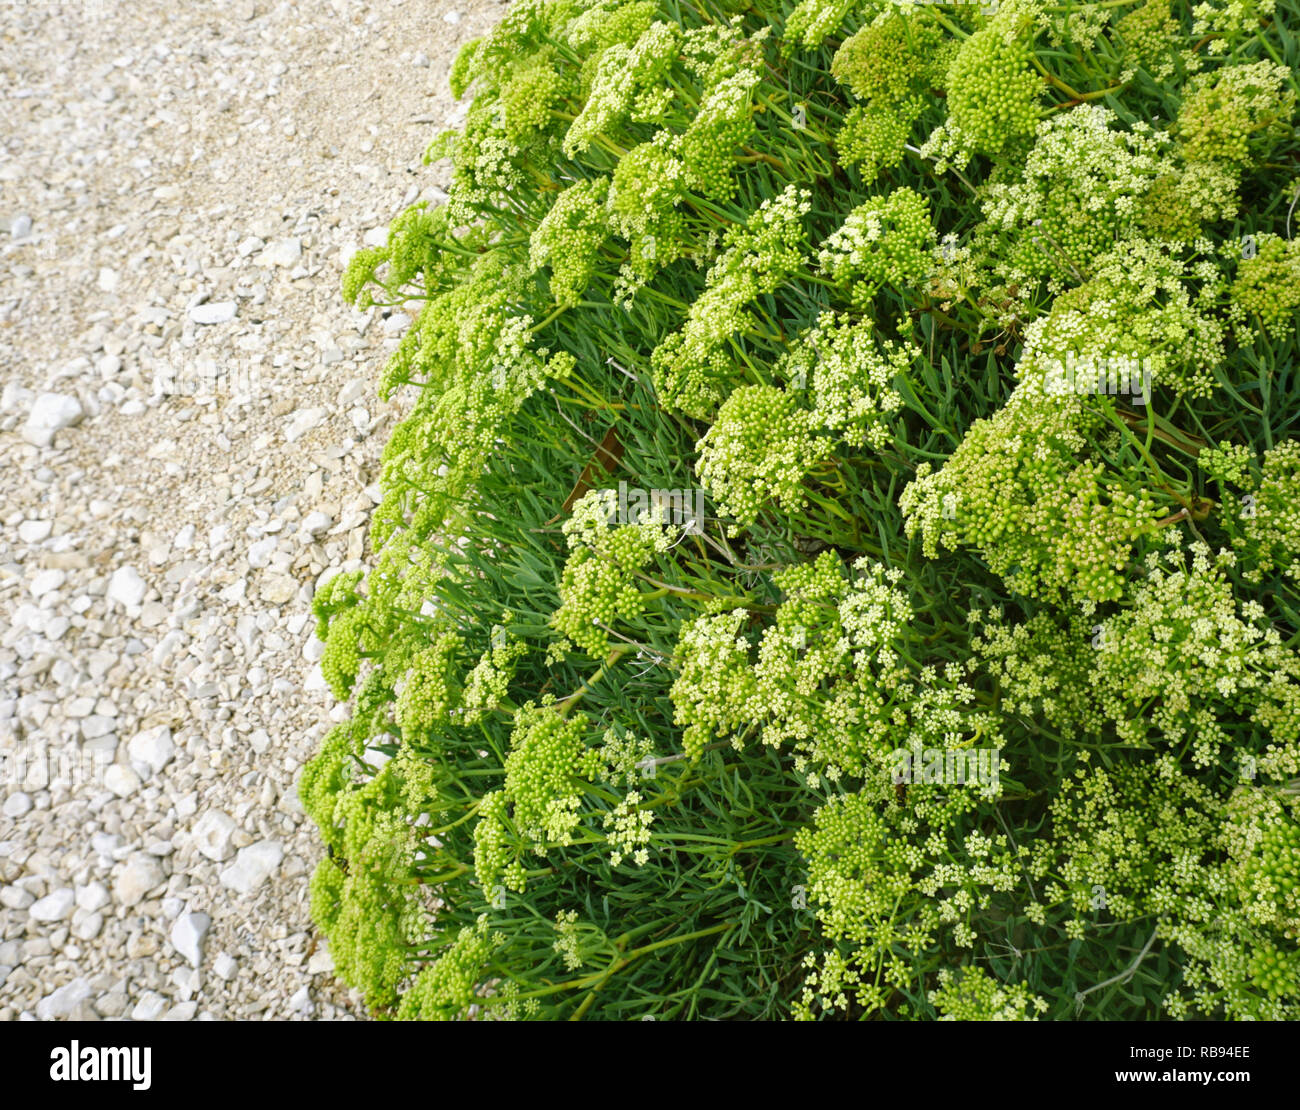 Mediterranean plant Crithmum maritimum L. or Sea fennel with buds and flowers on the pebble beach. Nutritious sea vegetable with many health benefits Stock Photo